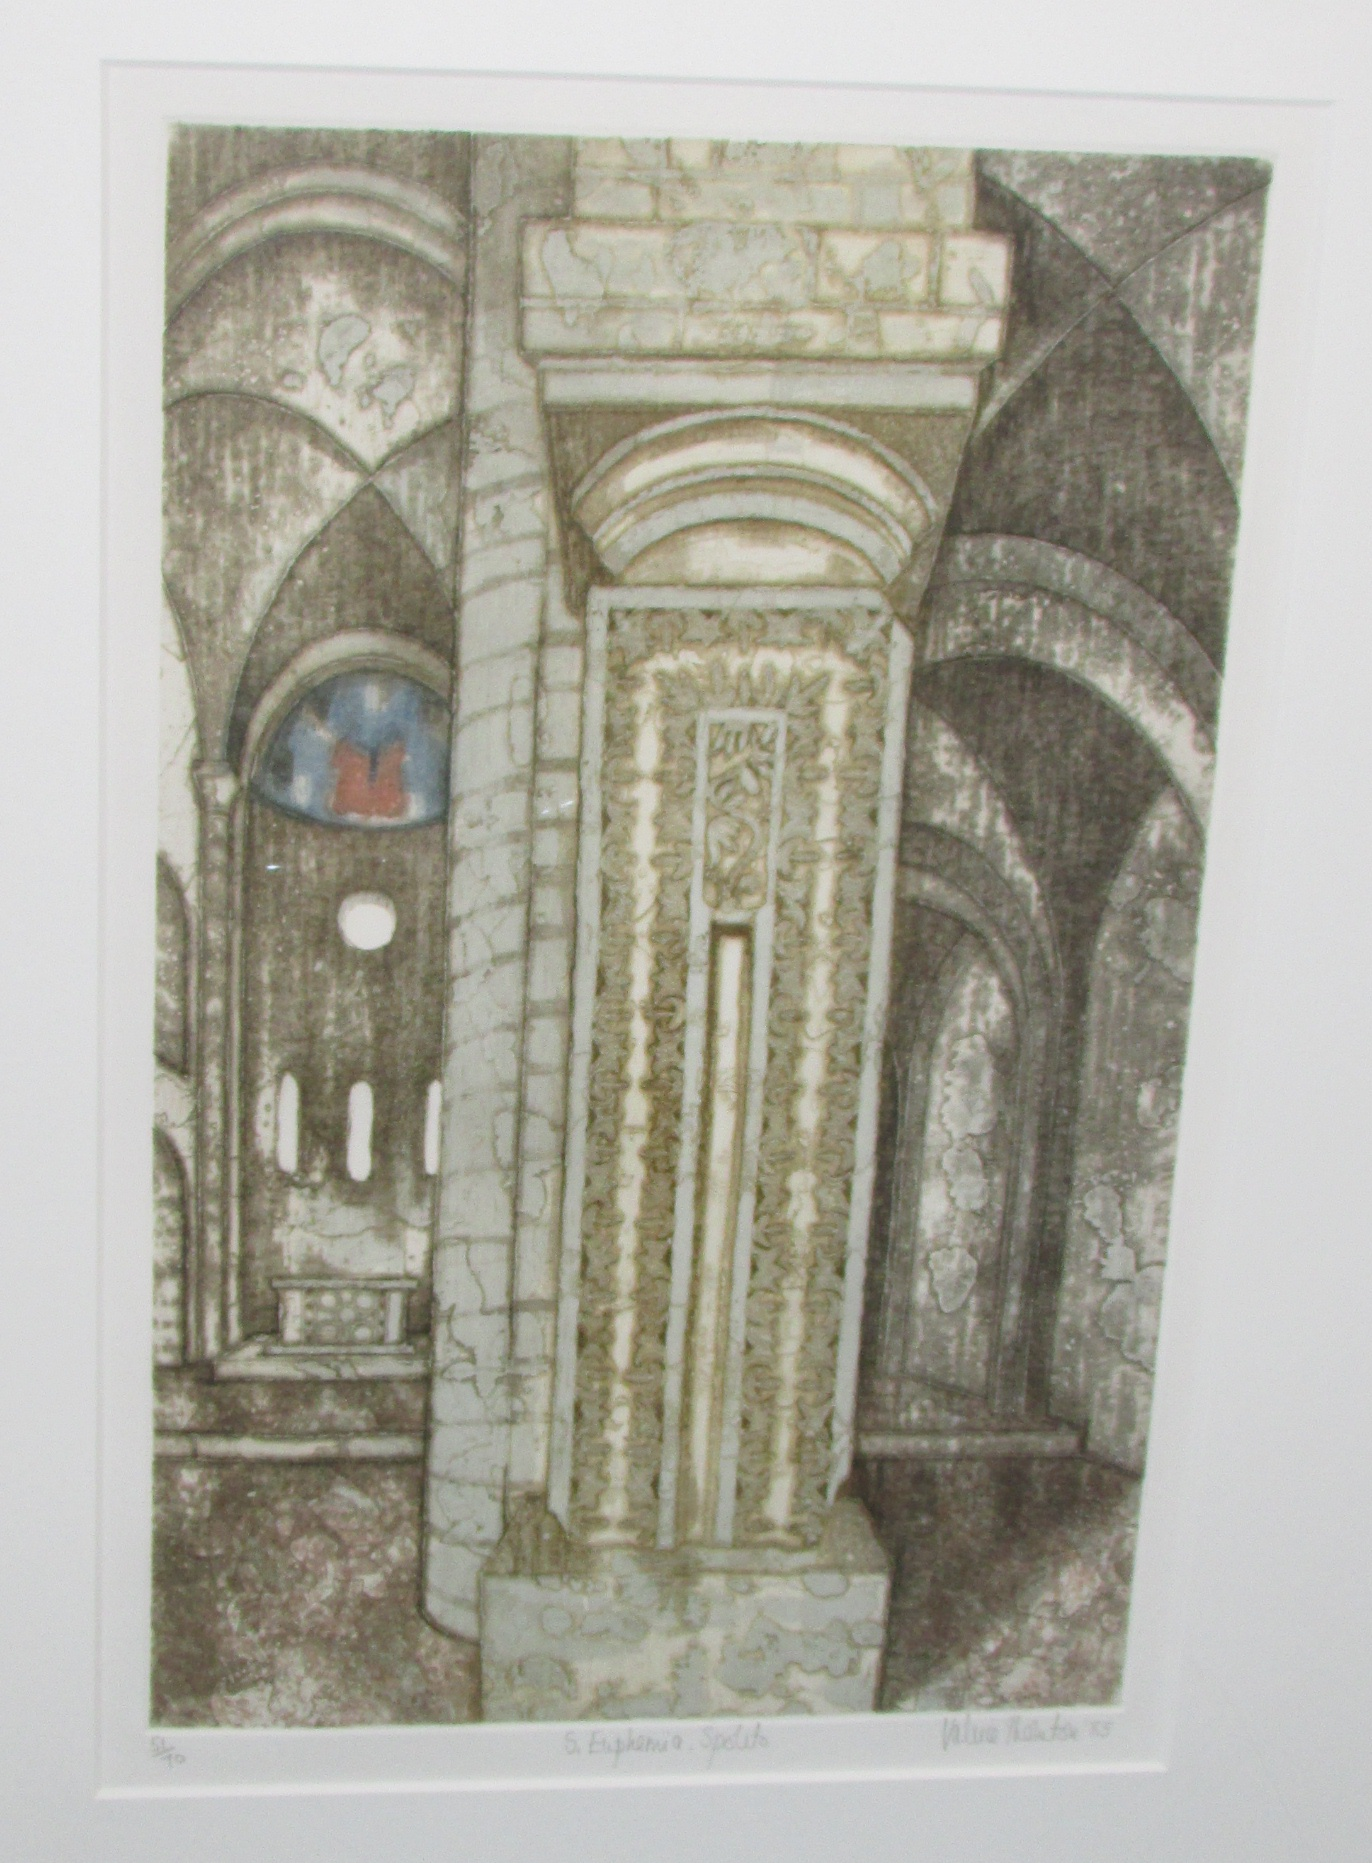 Lot 14 - Valerie Thornton (1931-1991) - 'S. Euphemia, Spoleto', etching and aquatint, signed edition of 70,